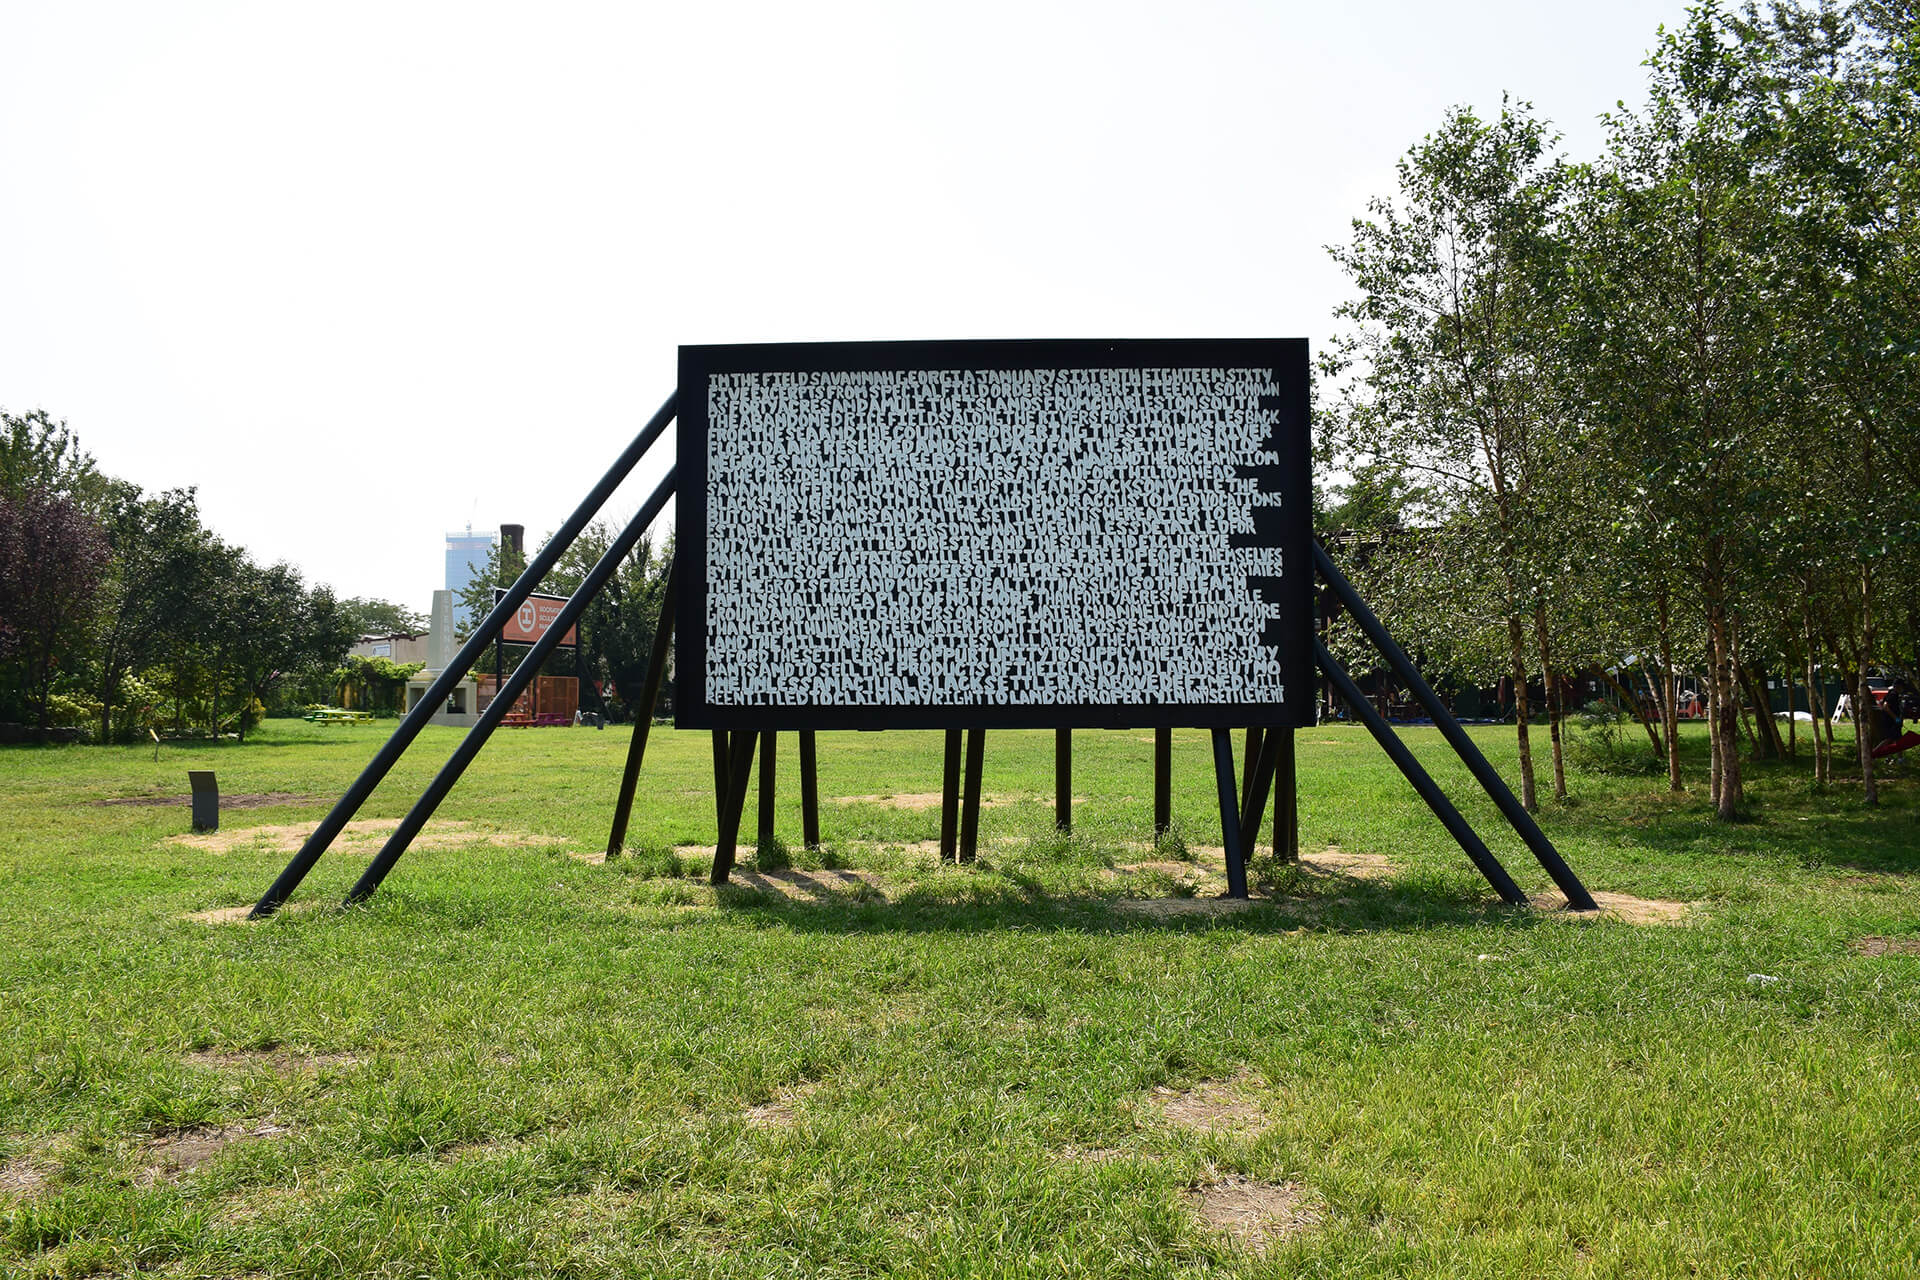 Xaviera Simmons; 'The structure the labor the foundation the escape the pause;' 2020. |In conversation: MONUMENTS NOW at Socrates Sculpture Park | STIRworld